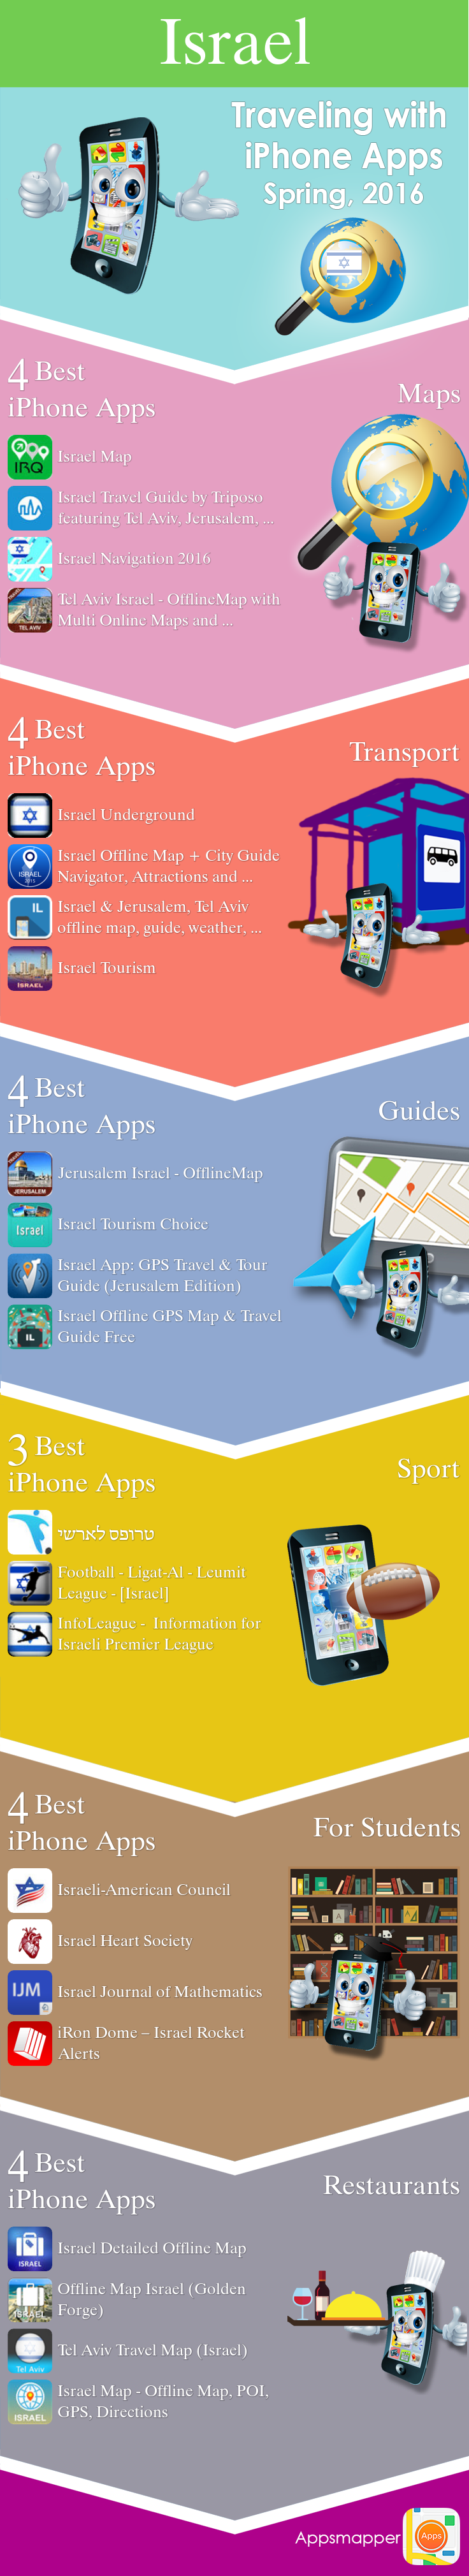 Israel iPhone apps: Travel Guides, Maps, Transportation, Biking, Museums, Parking, Sport and apps for Students.